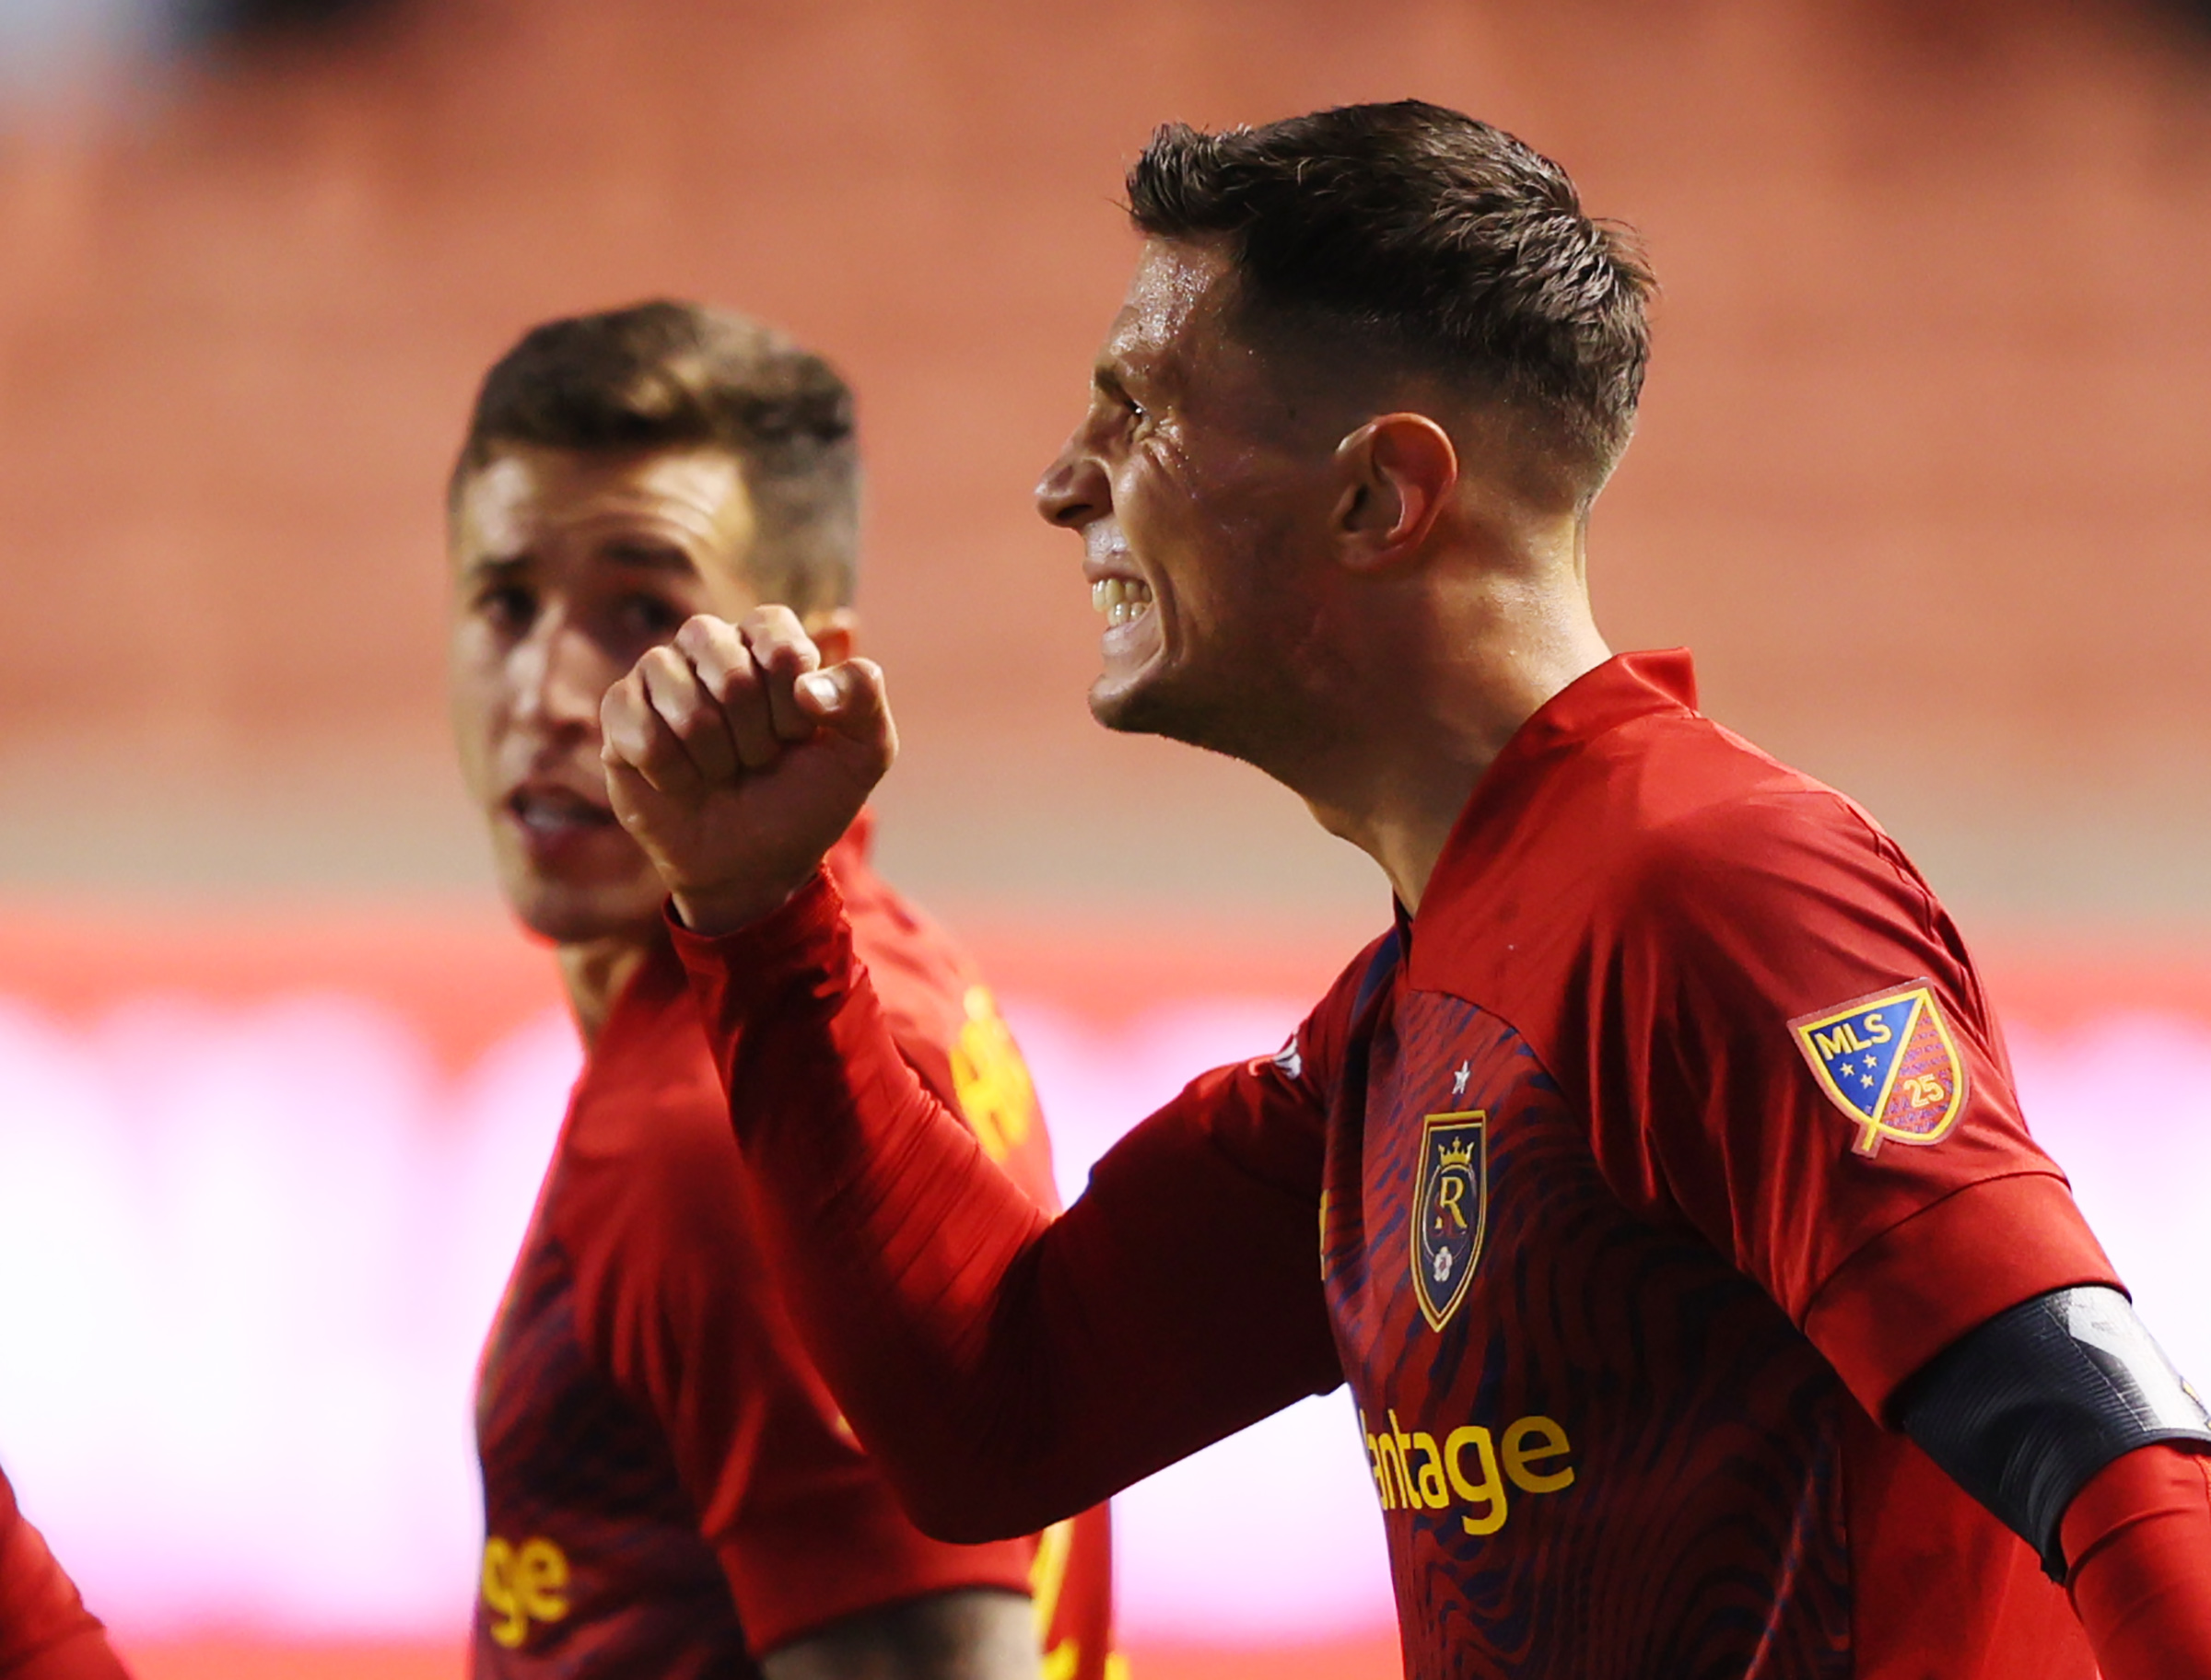 Real Salt Lake midfielder Damir Kreilach (8) celebrates a goal as RSL and Portland play an MLS soccer game at Rio Tinto Stadium in Sandy on Wednesday, Oct. 14, 2020.